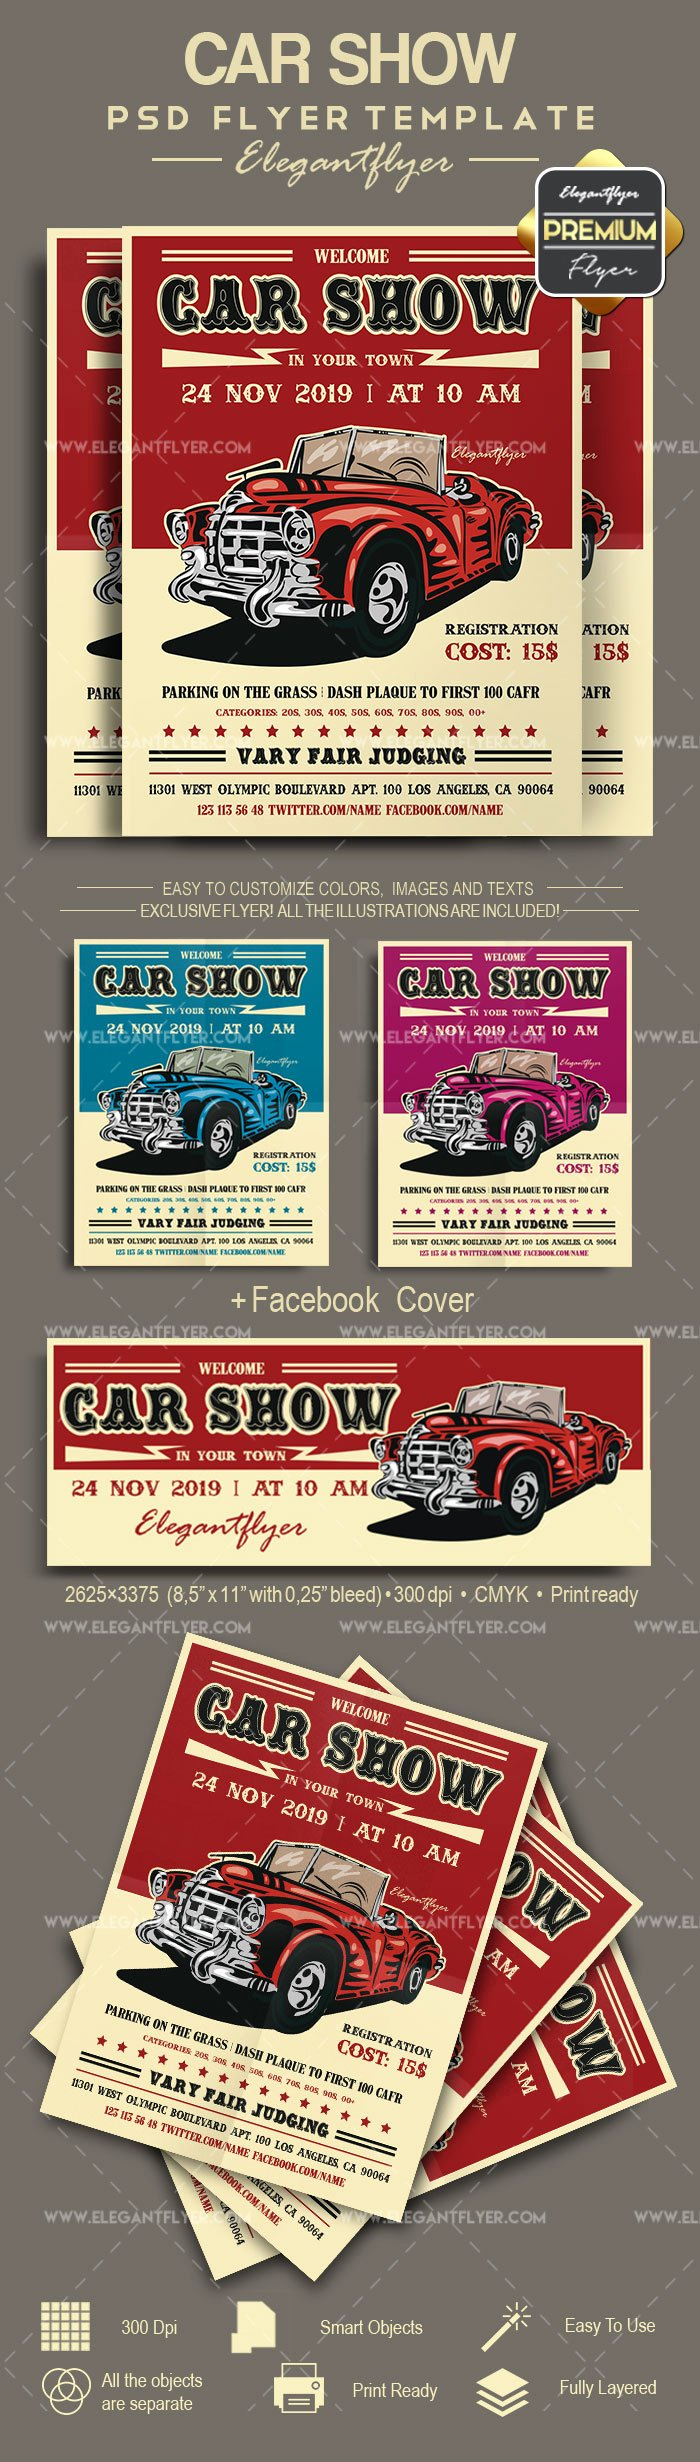 Free Car Show Flyer Template Best Of Classic Car Show Flyer Template – by Elegantflyer